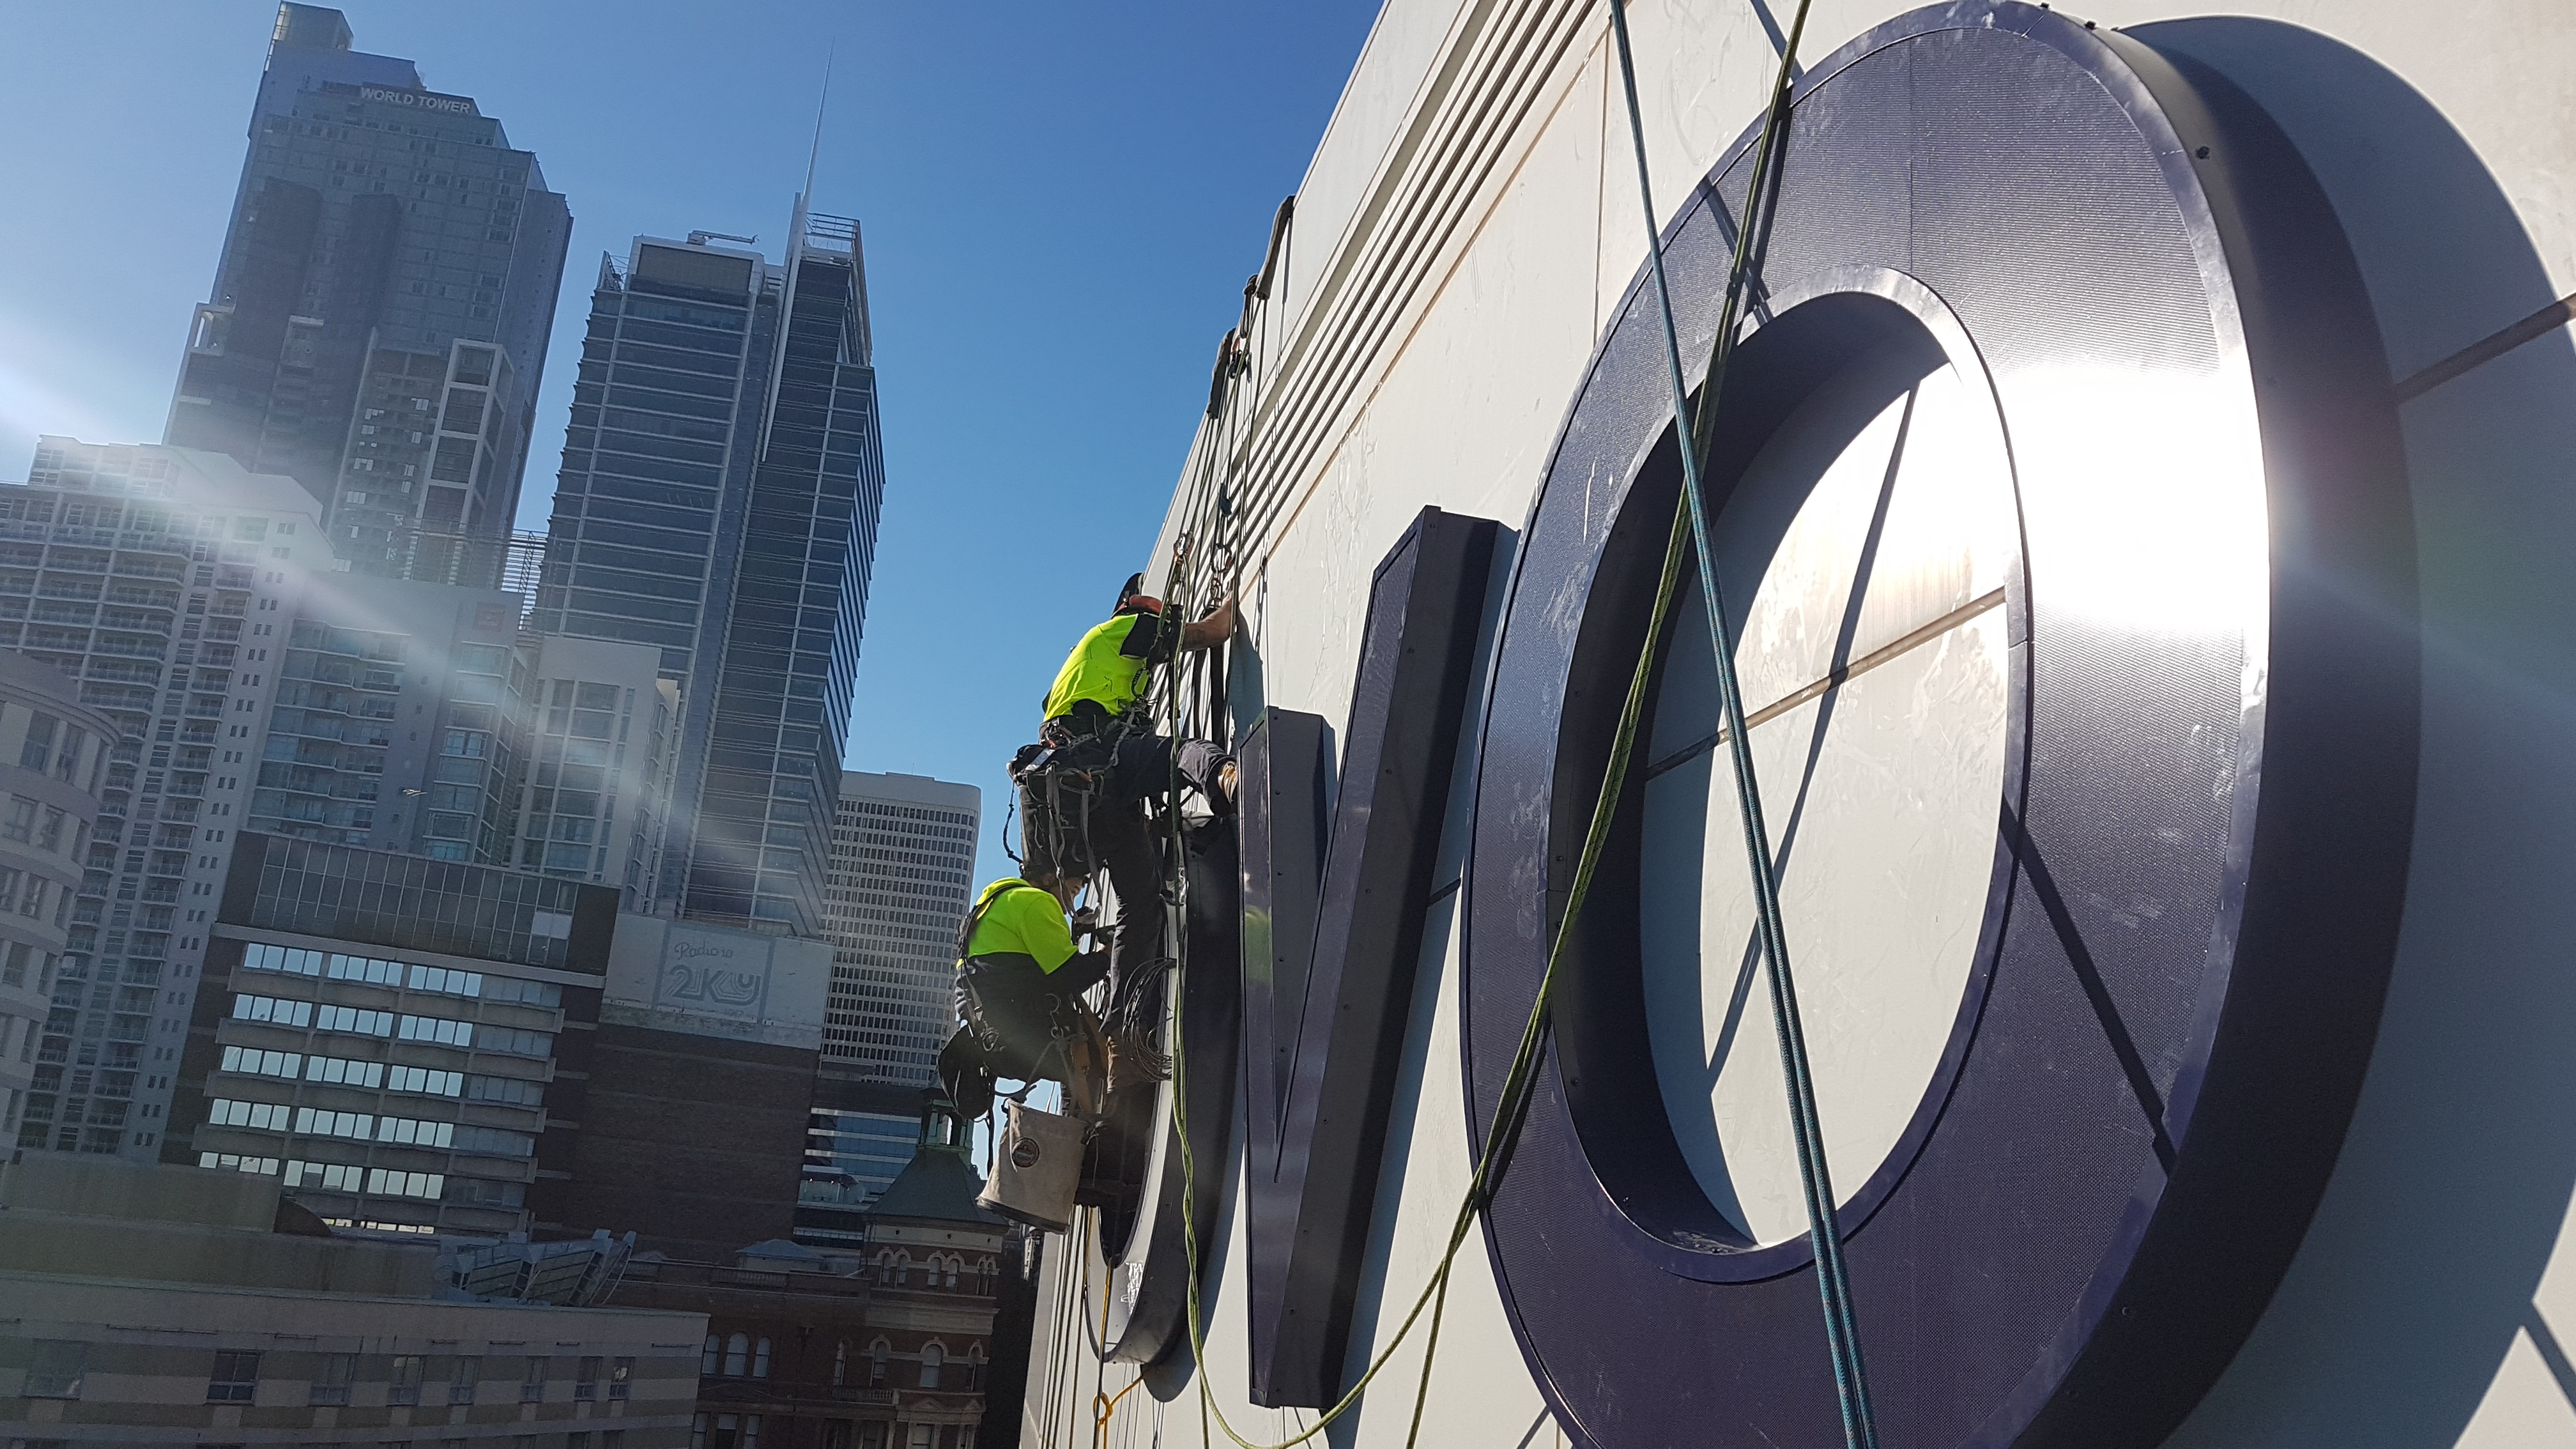 LED sign installers